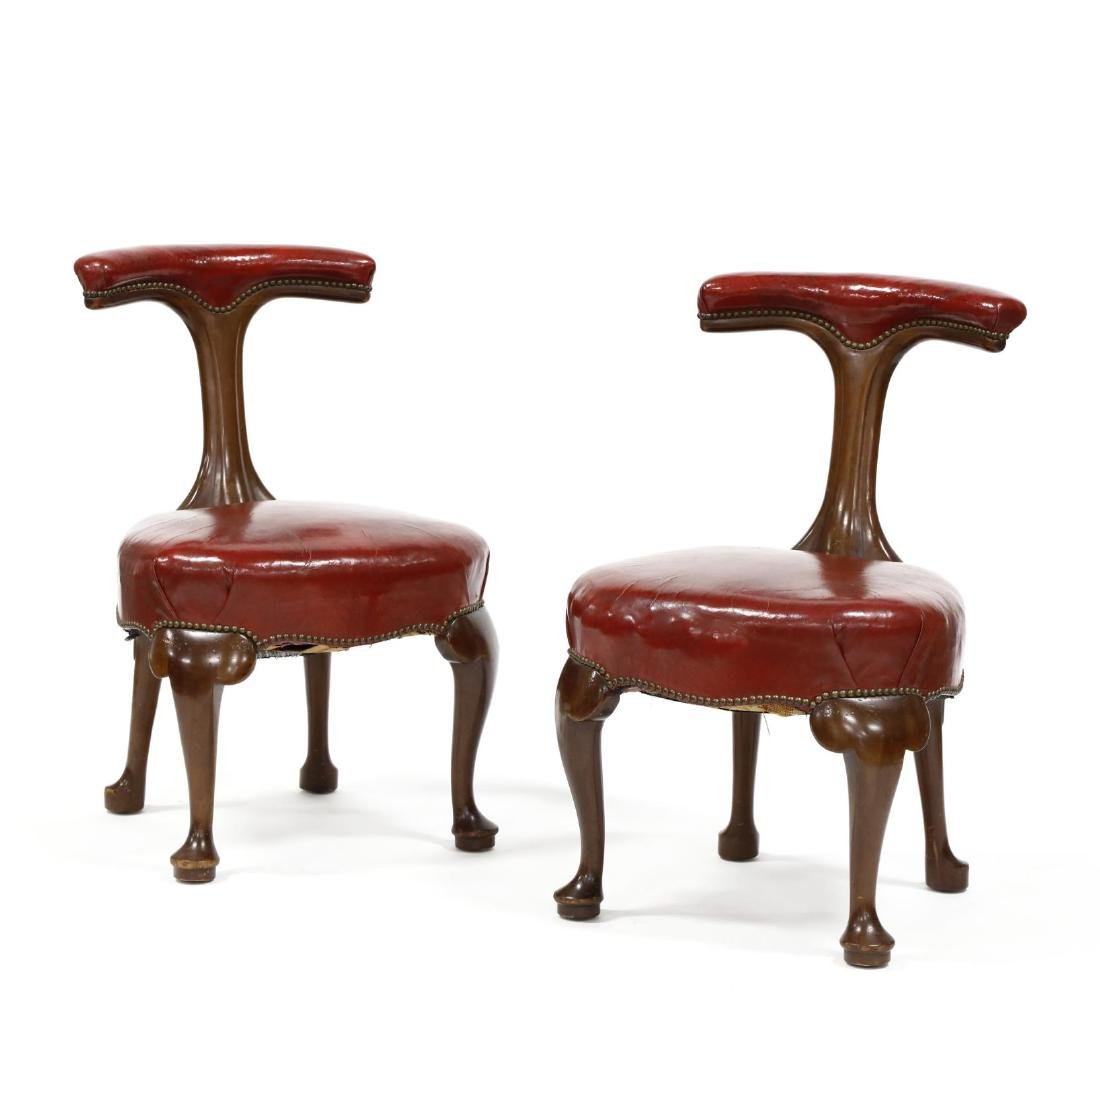 W. & J. Sloane, Pair of Queen Anne Style Leather